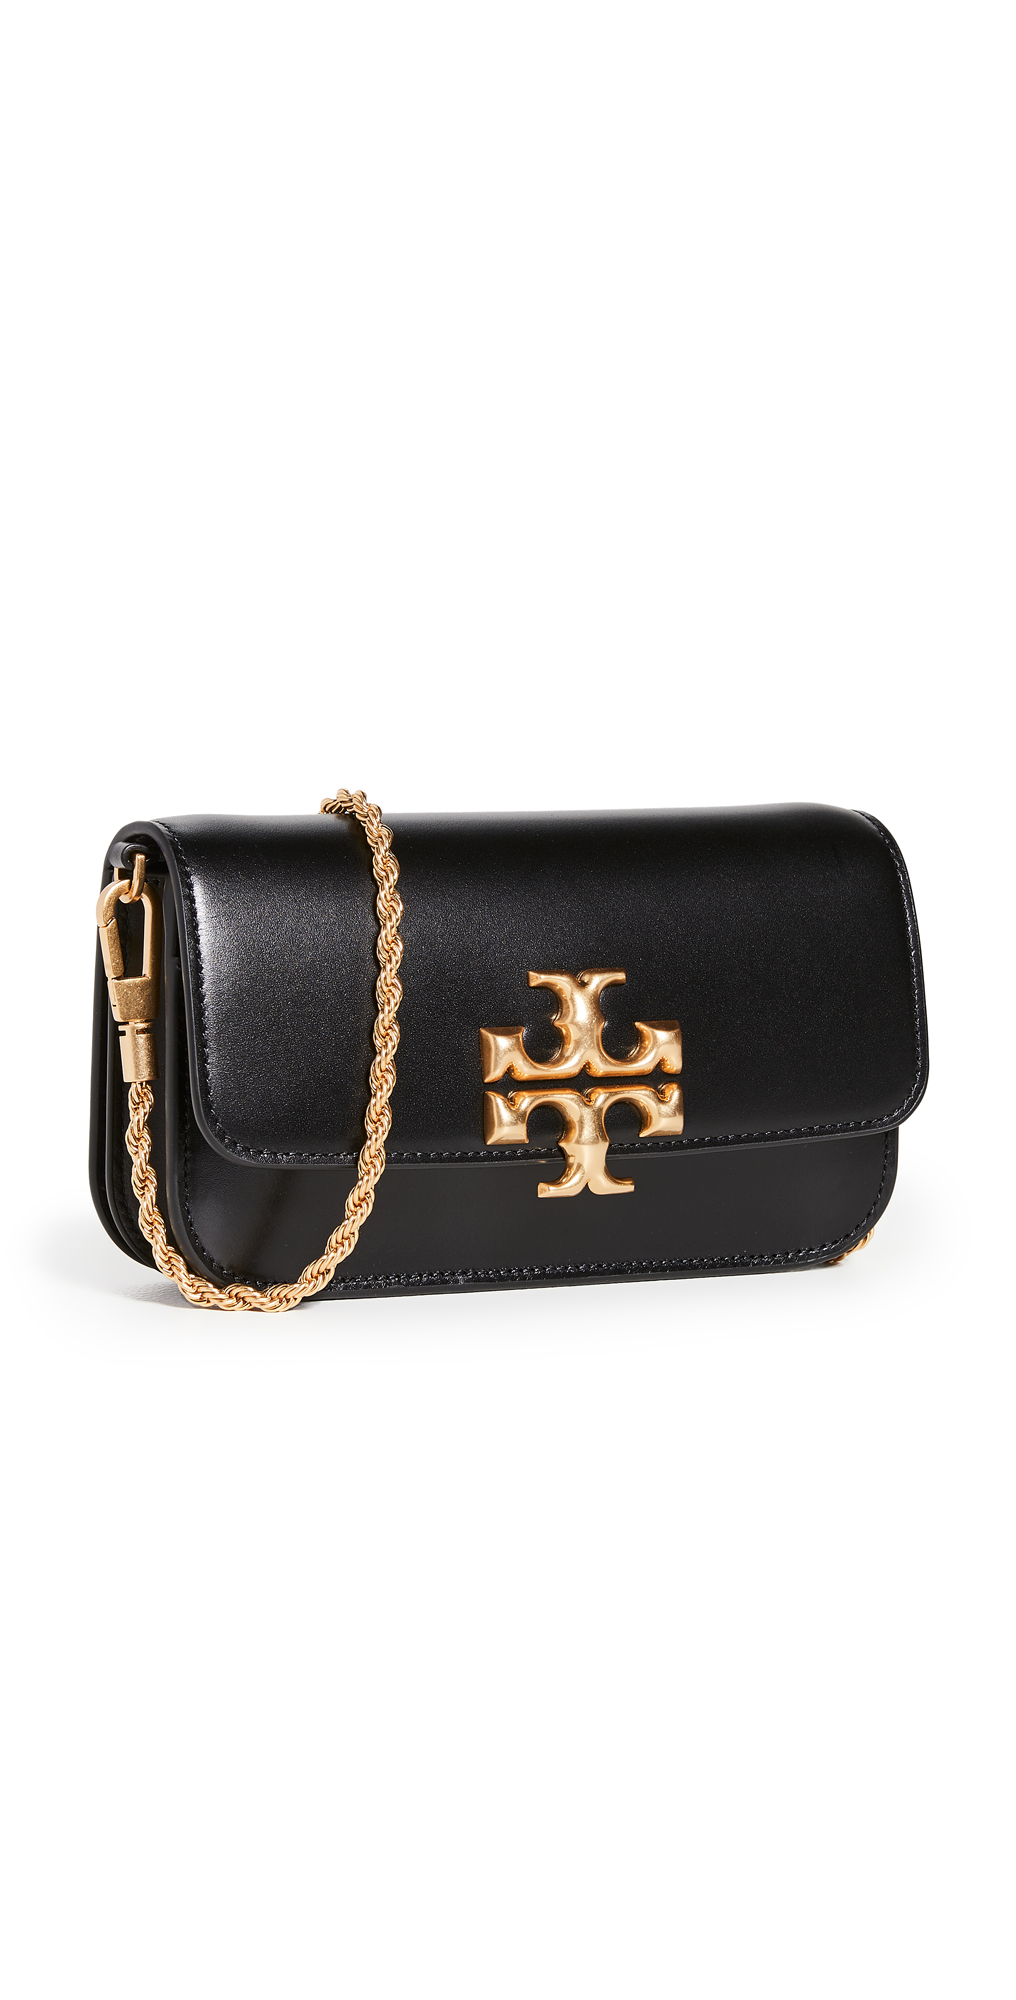 Tory Burch Eleanor Phone Crossbody Bag